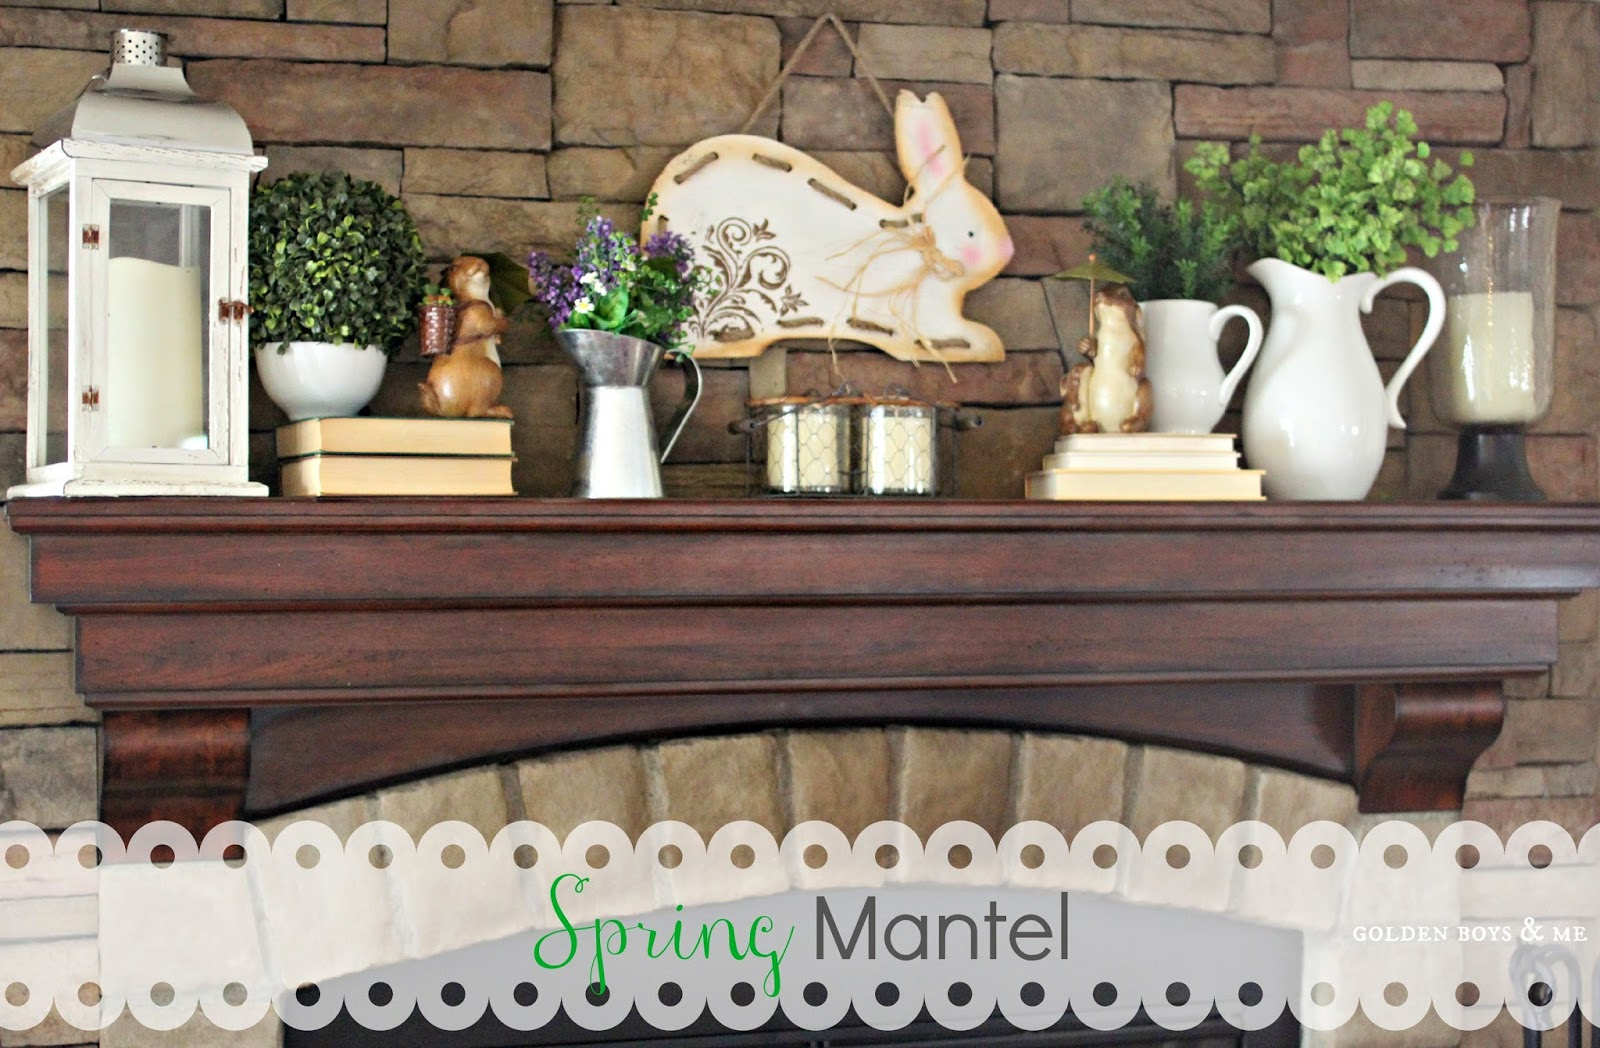 spring mantel stone fireplace with rabbit sign and white pitchers-www.goldenboysandme.com